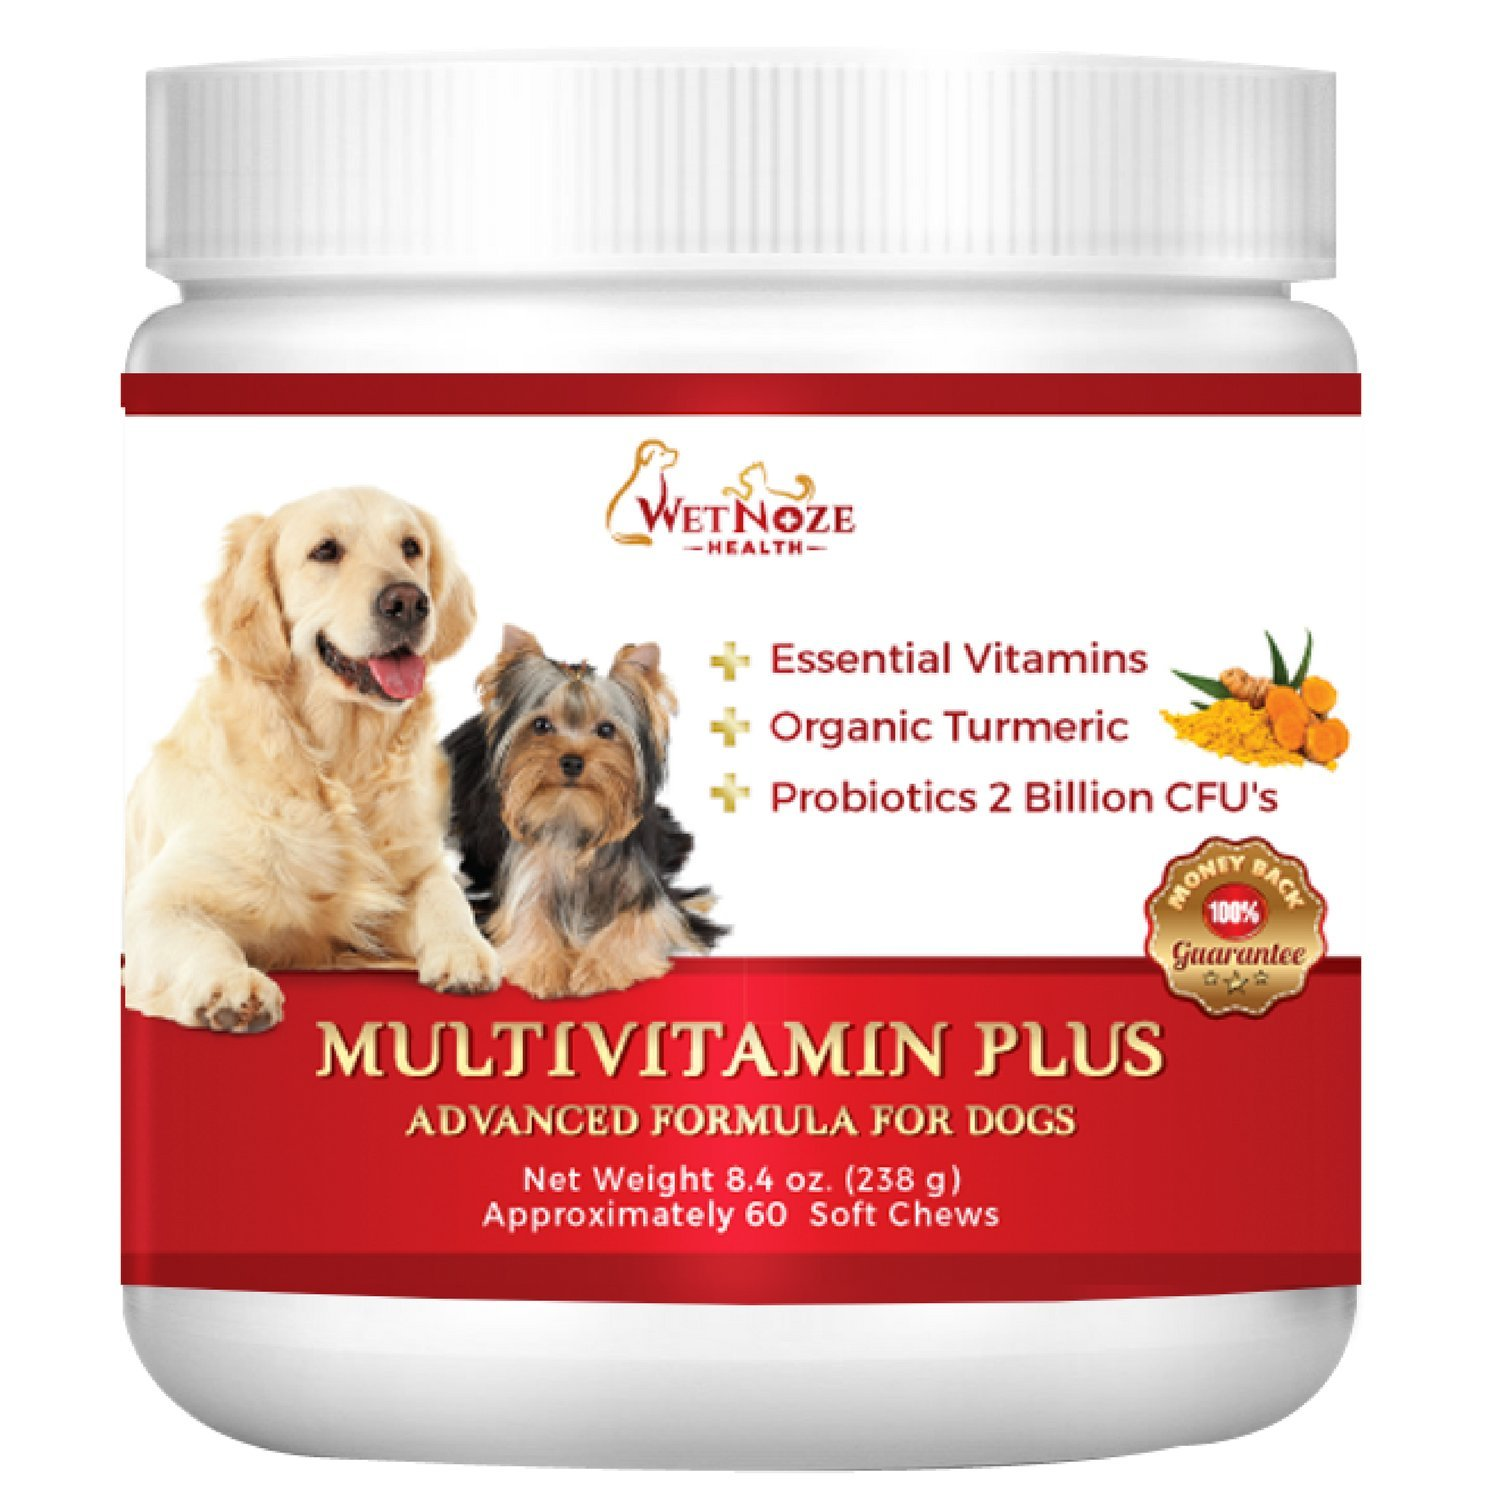 WetNozeHealth Vitamins for Dogs - Canine Multivitamin Supplement with Organic Turmeric and Probiotics for Large and Small Dogs, Chicken Flavor - 60 Soft Chews by WetNozeHealth